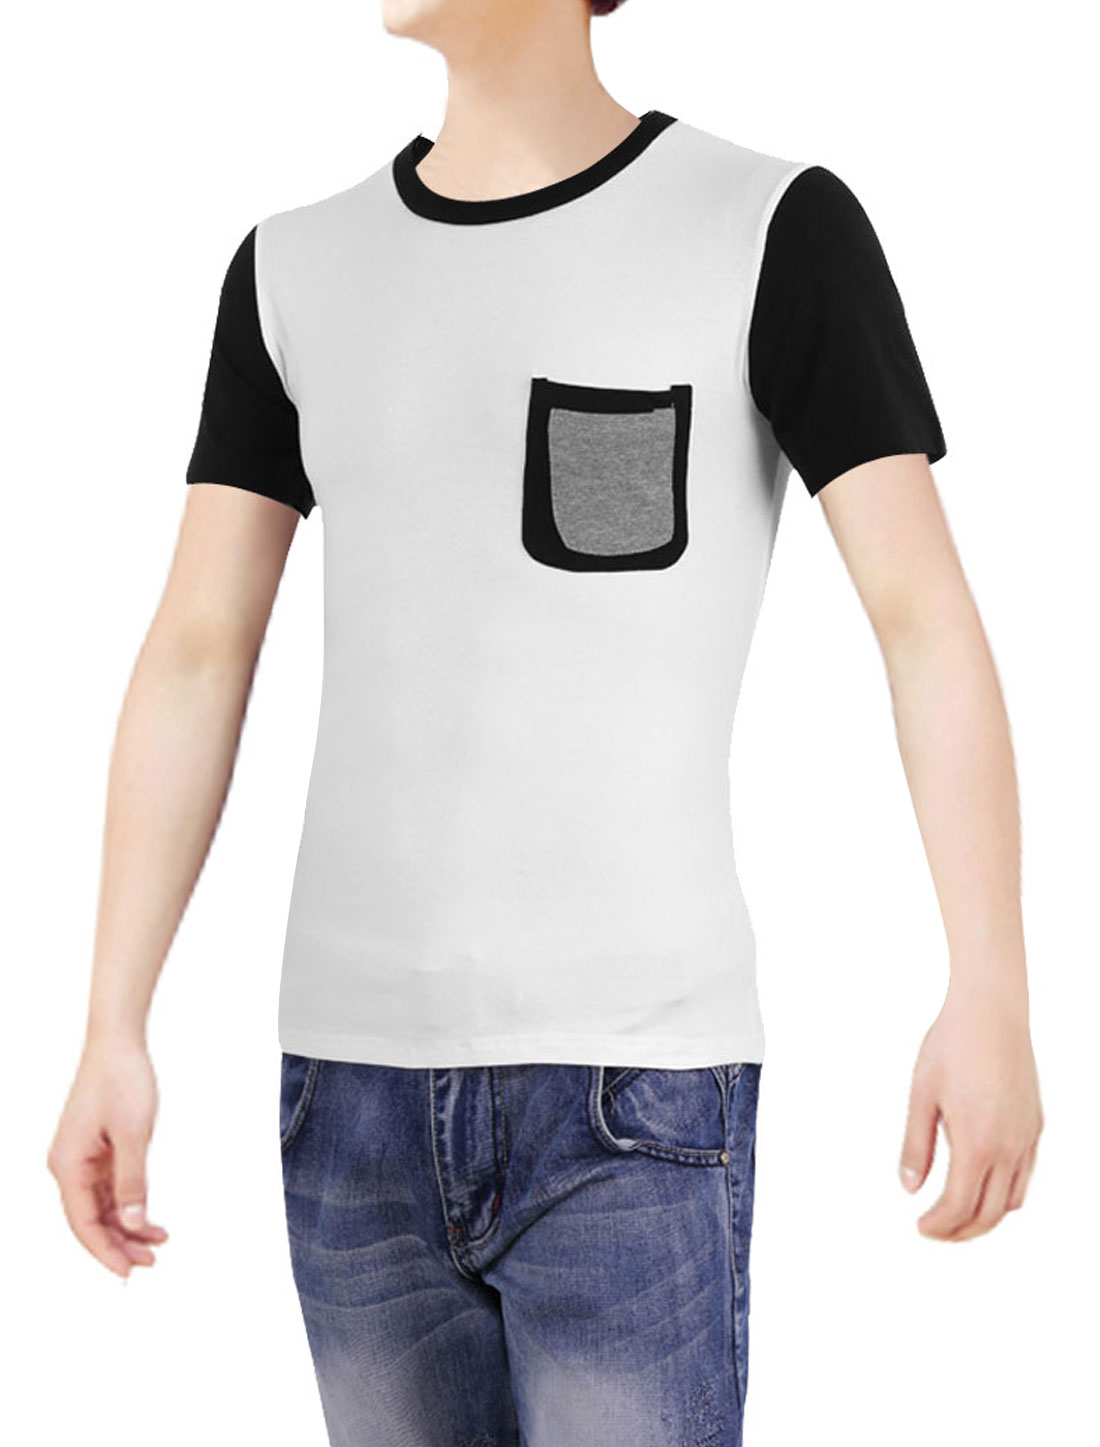 Men Short-sleeved Pockets Round Neck Korean Style Tops Shirt White S